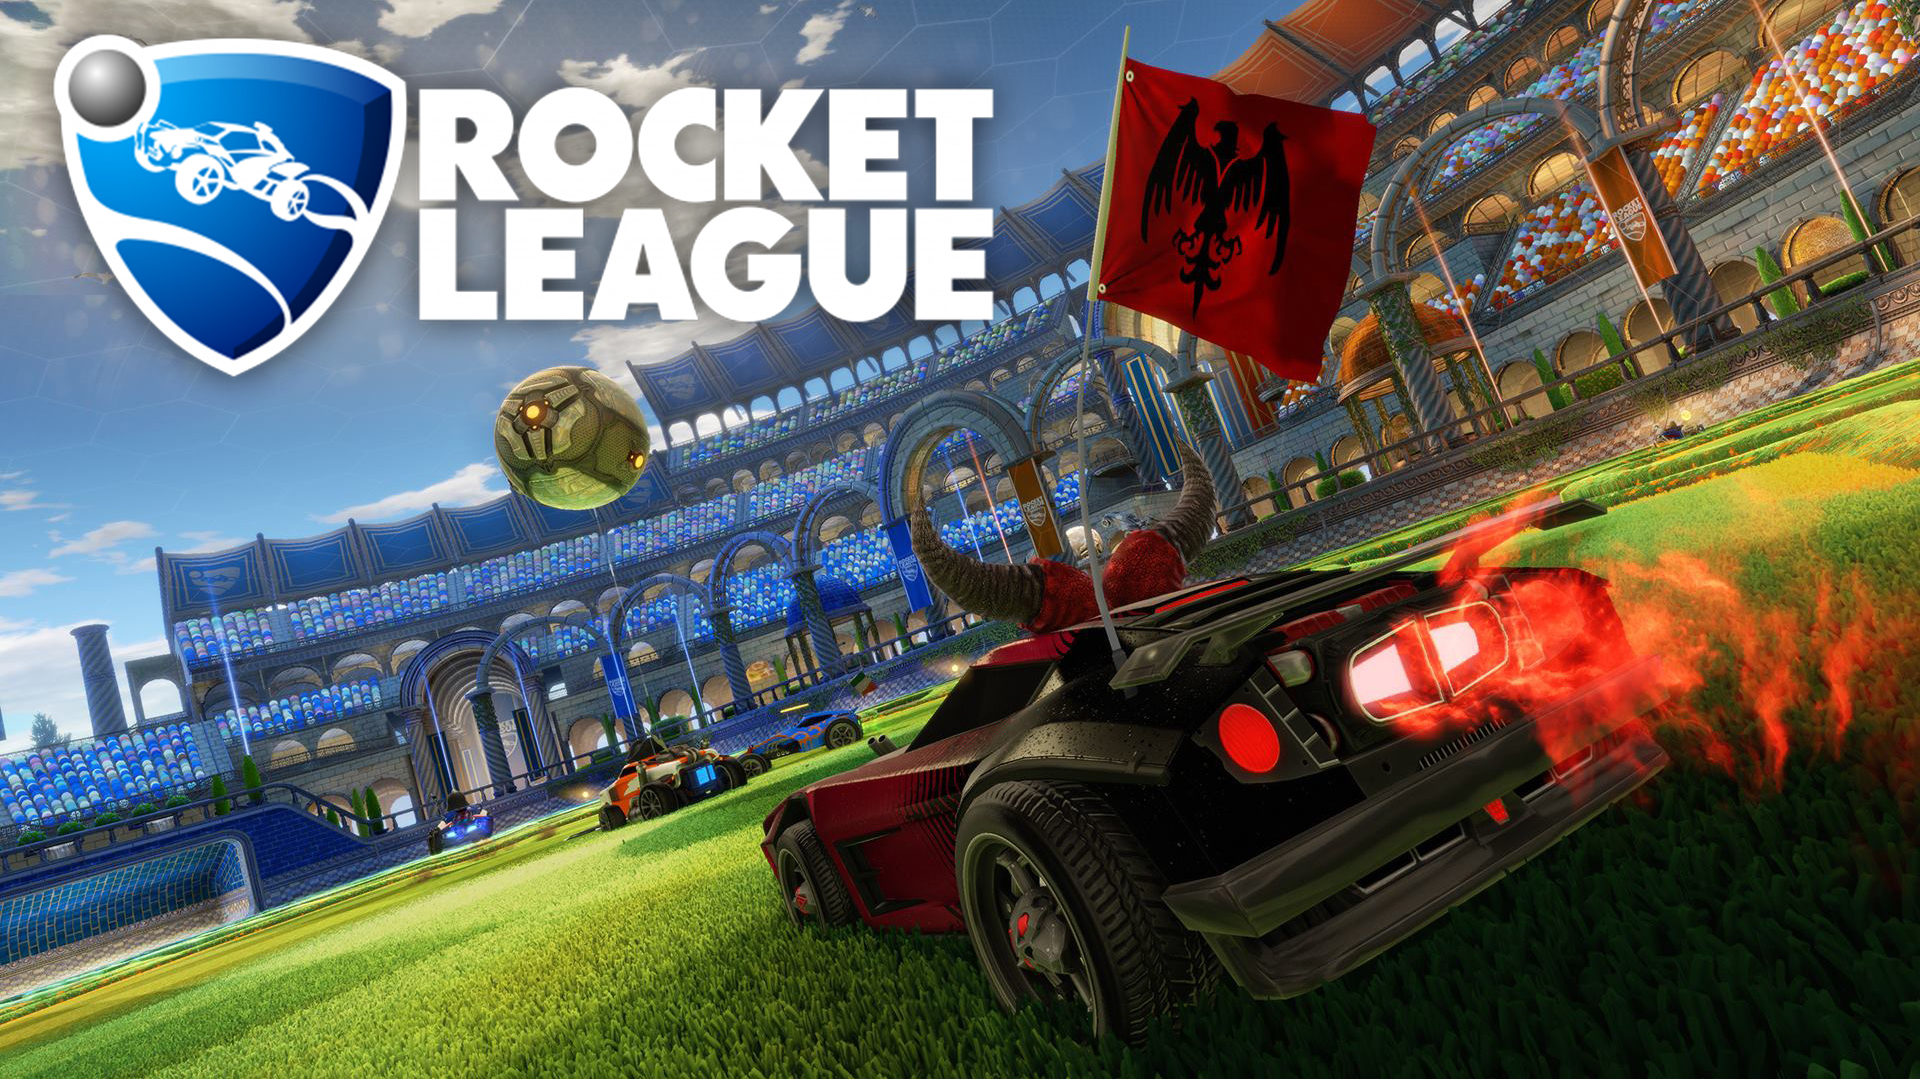 10.30 - Start Rocket League 2v2